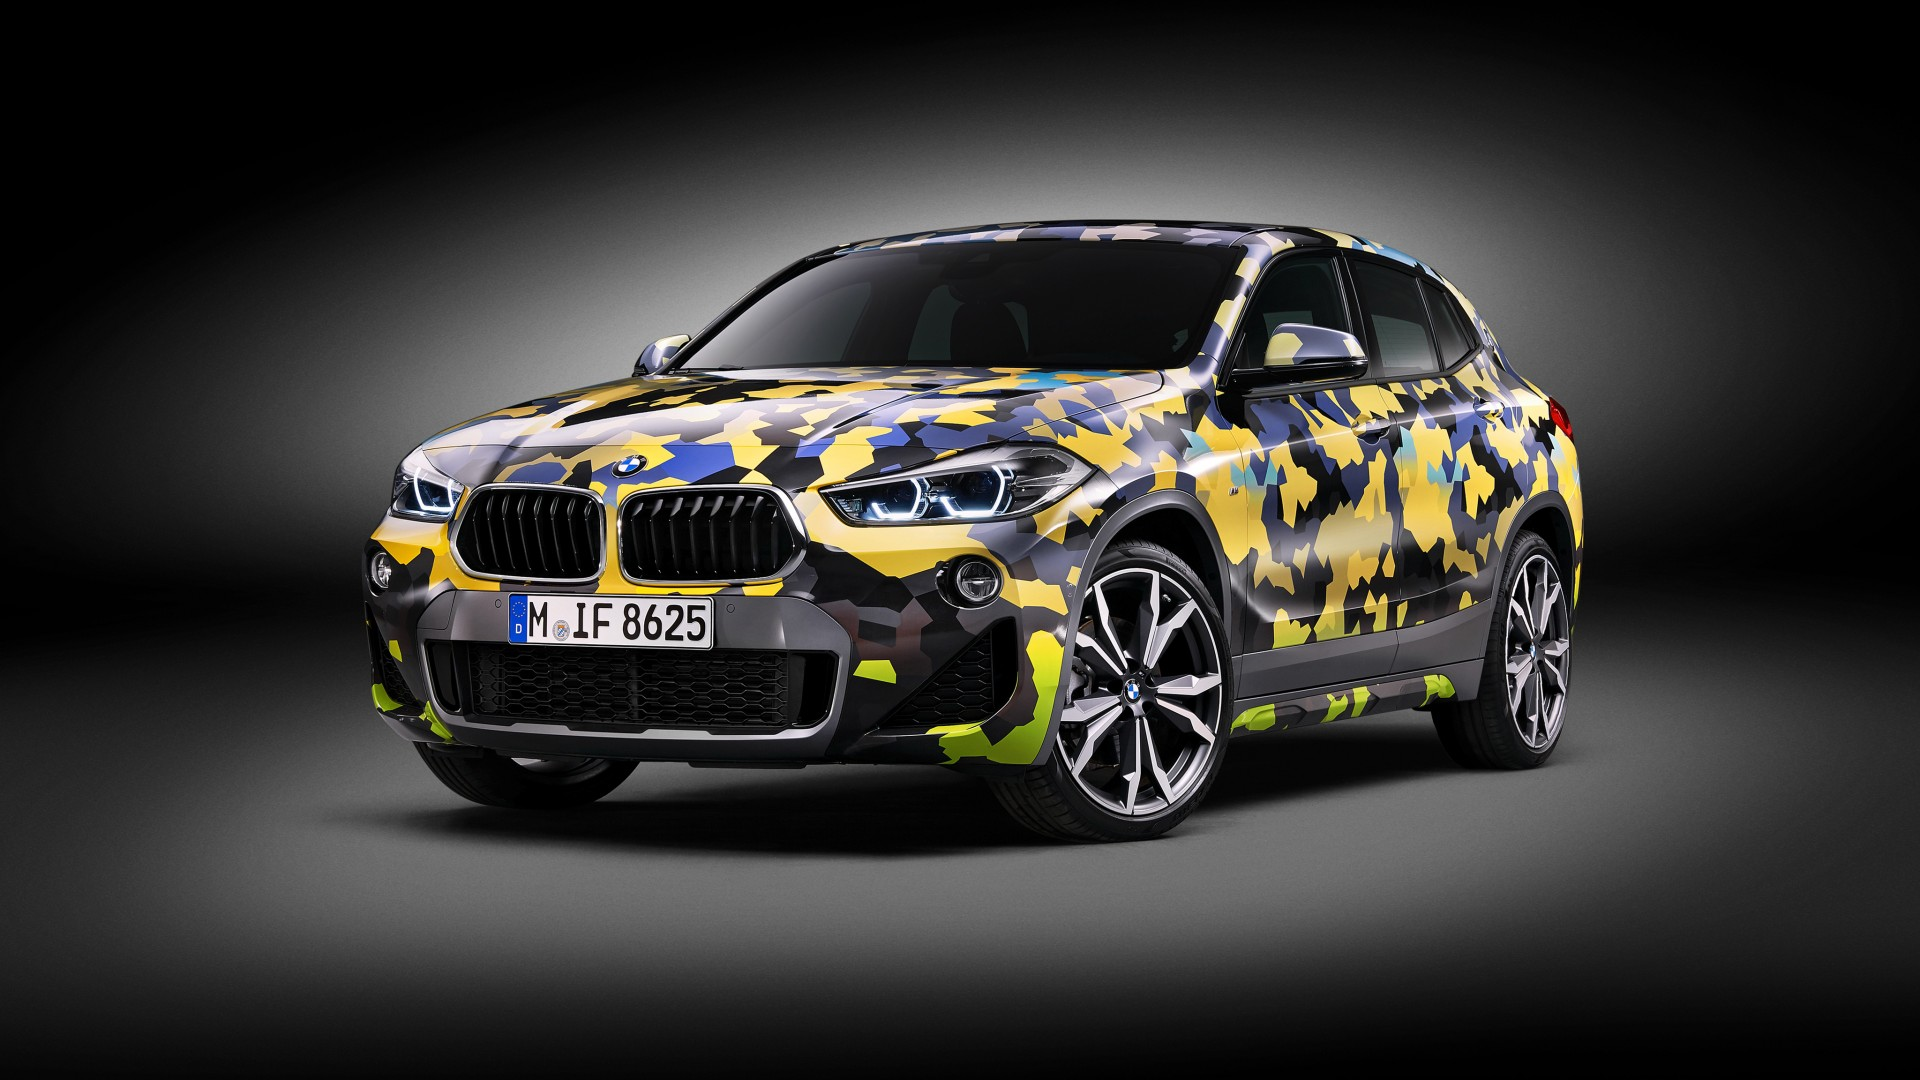 2018 Bmw X2 Digital Camo Concept 4k Wallpaper Hd Car